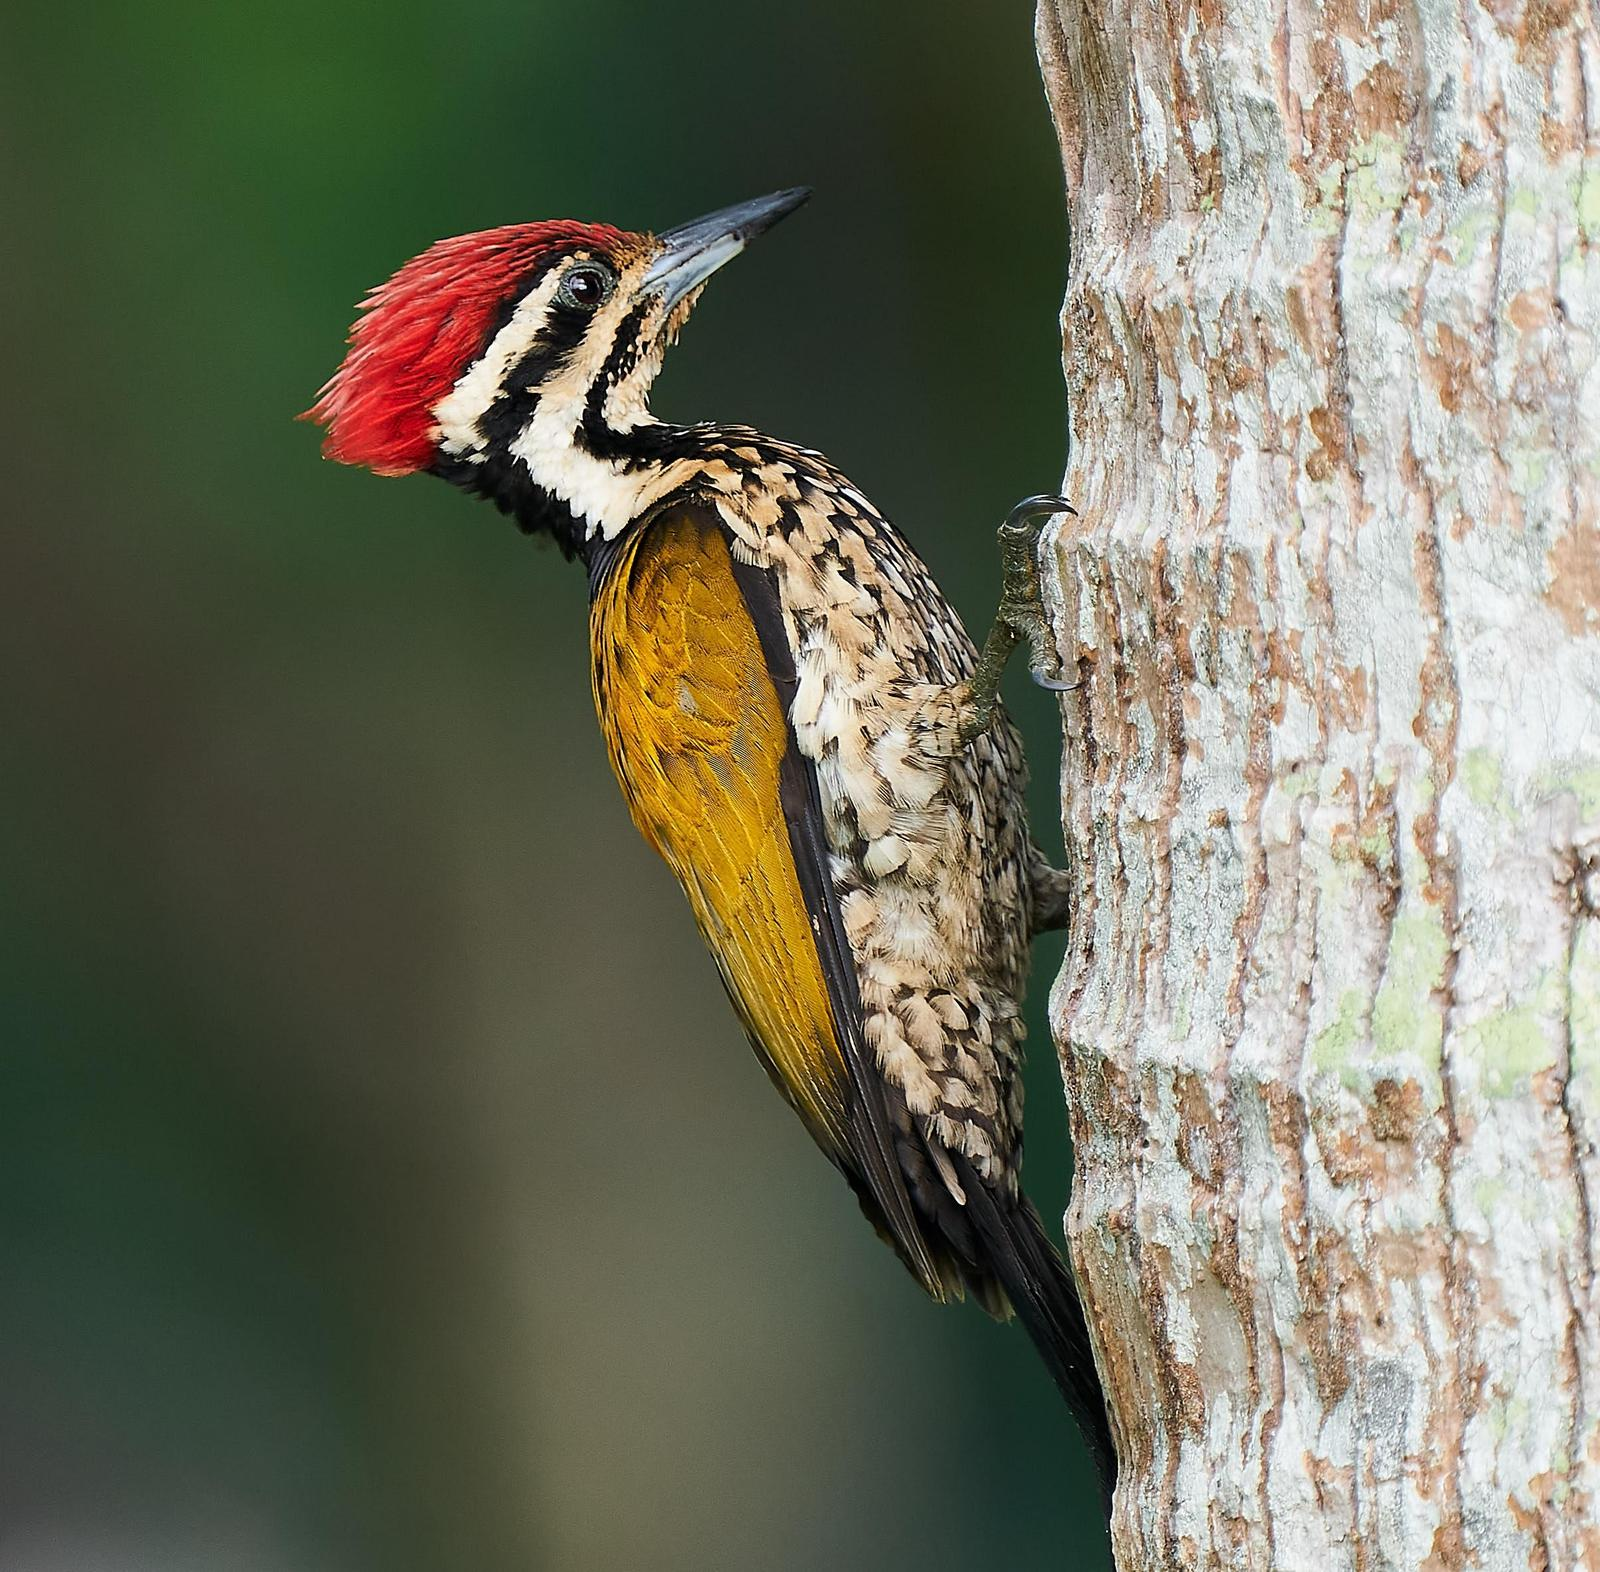 Common Flameback Photo by Steven Cheong